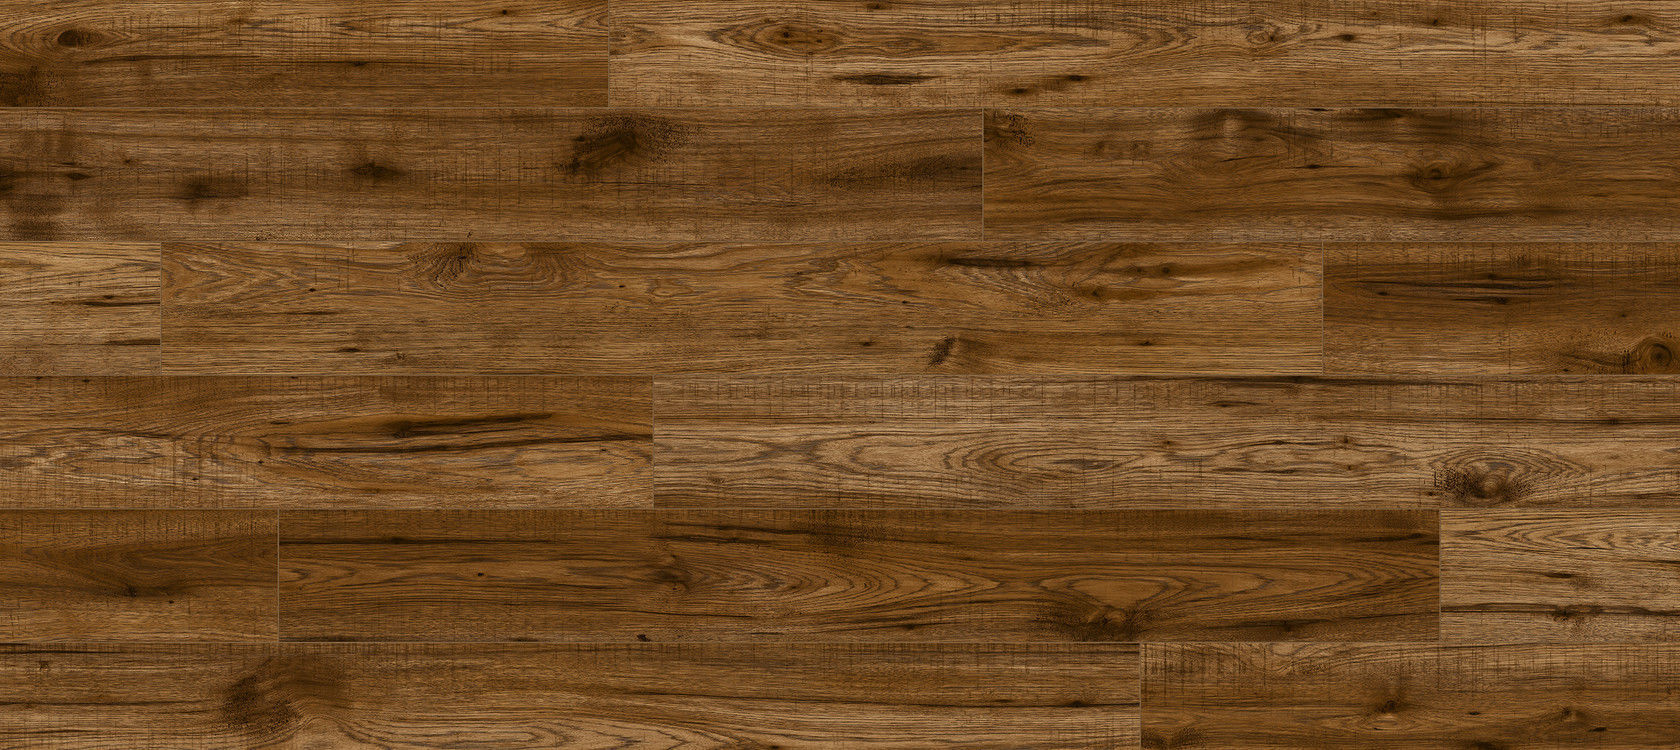 Wooden Laminate Flooring Floating Wood Look Residential